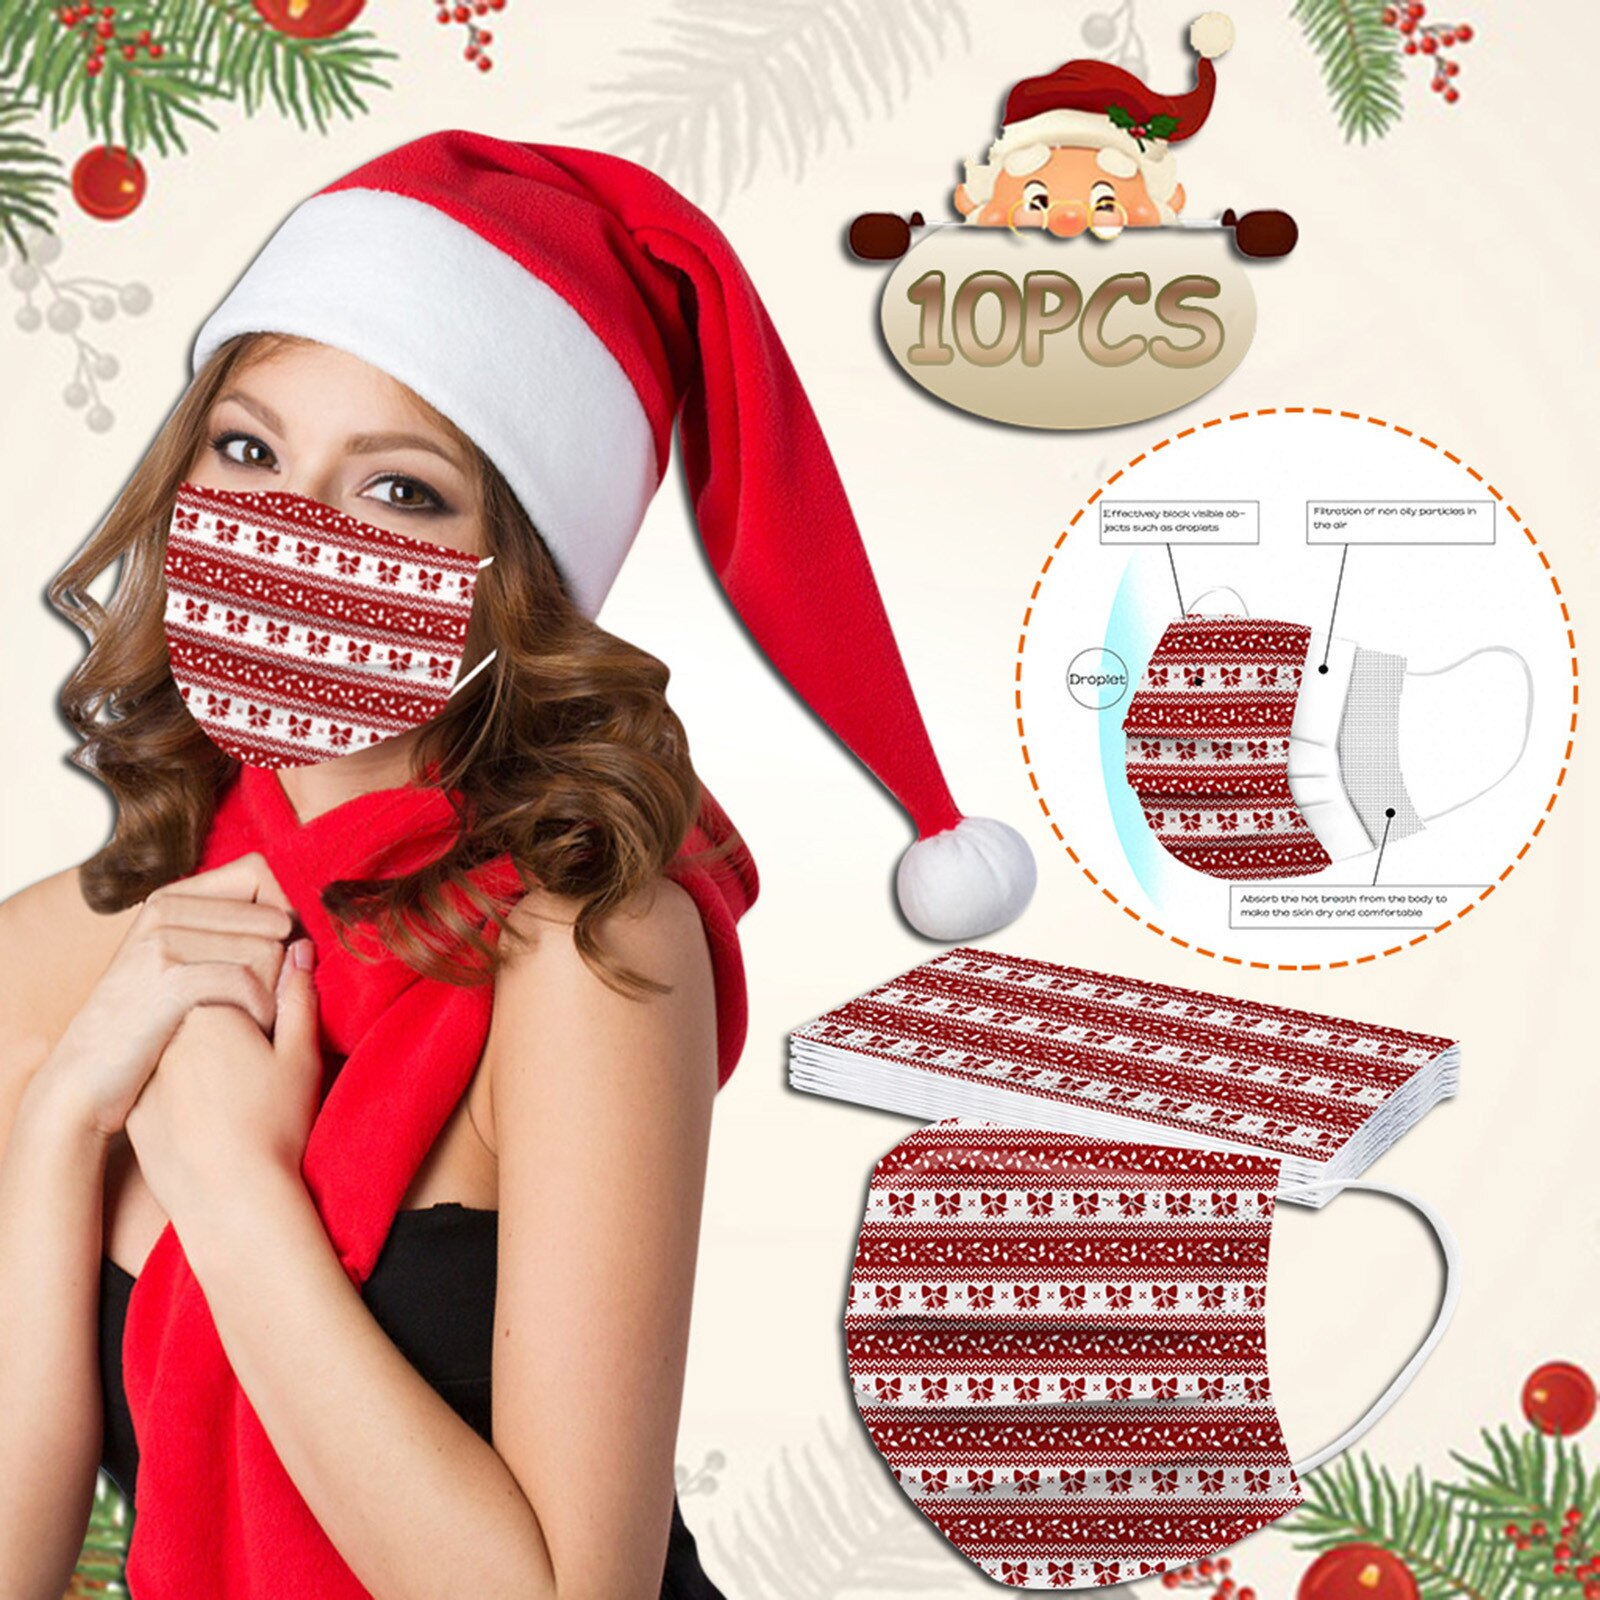 Mascarilla 10pcs Adult Woman Mask Disposable Christmas Face Mask Fashion Cartoon 3ply Earloop Mouth Caps Disposable Navidad 1